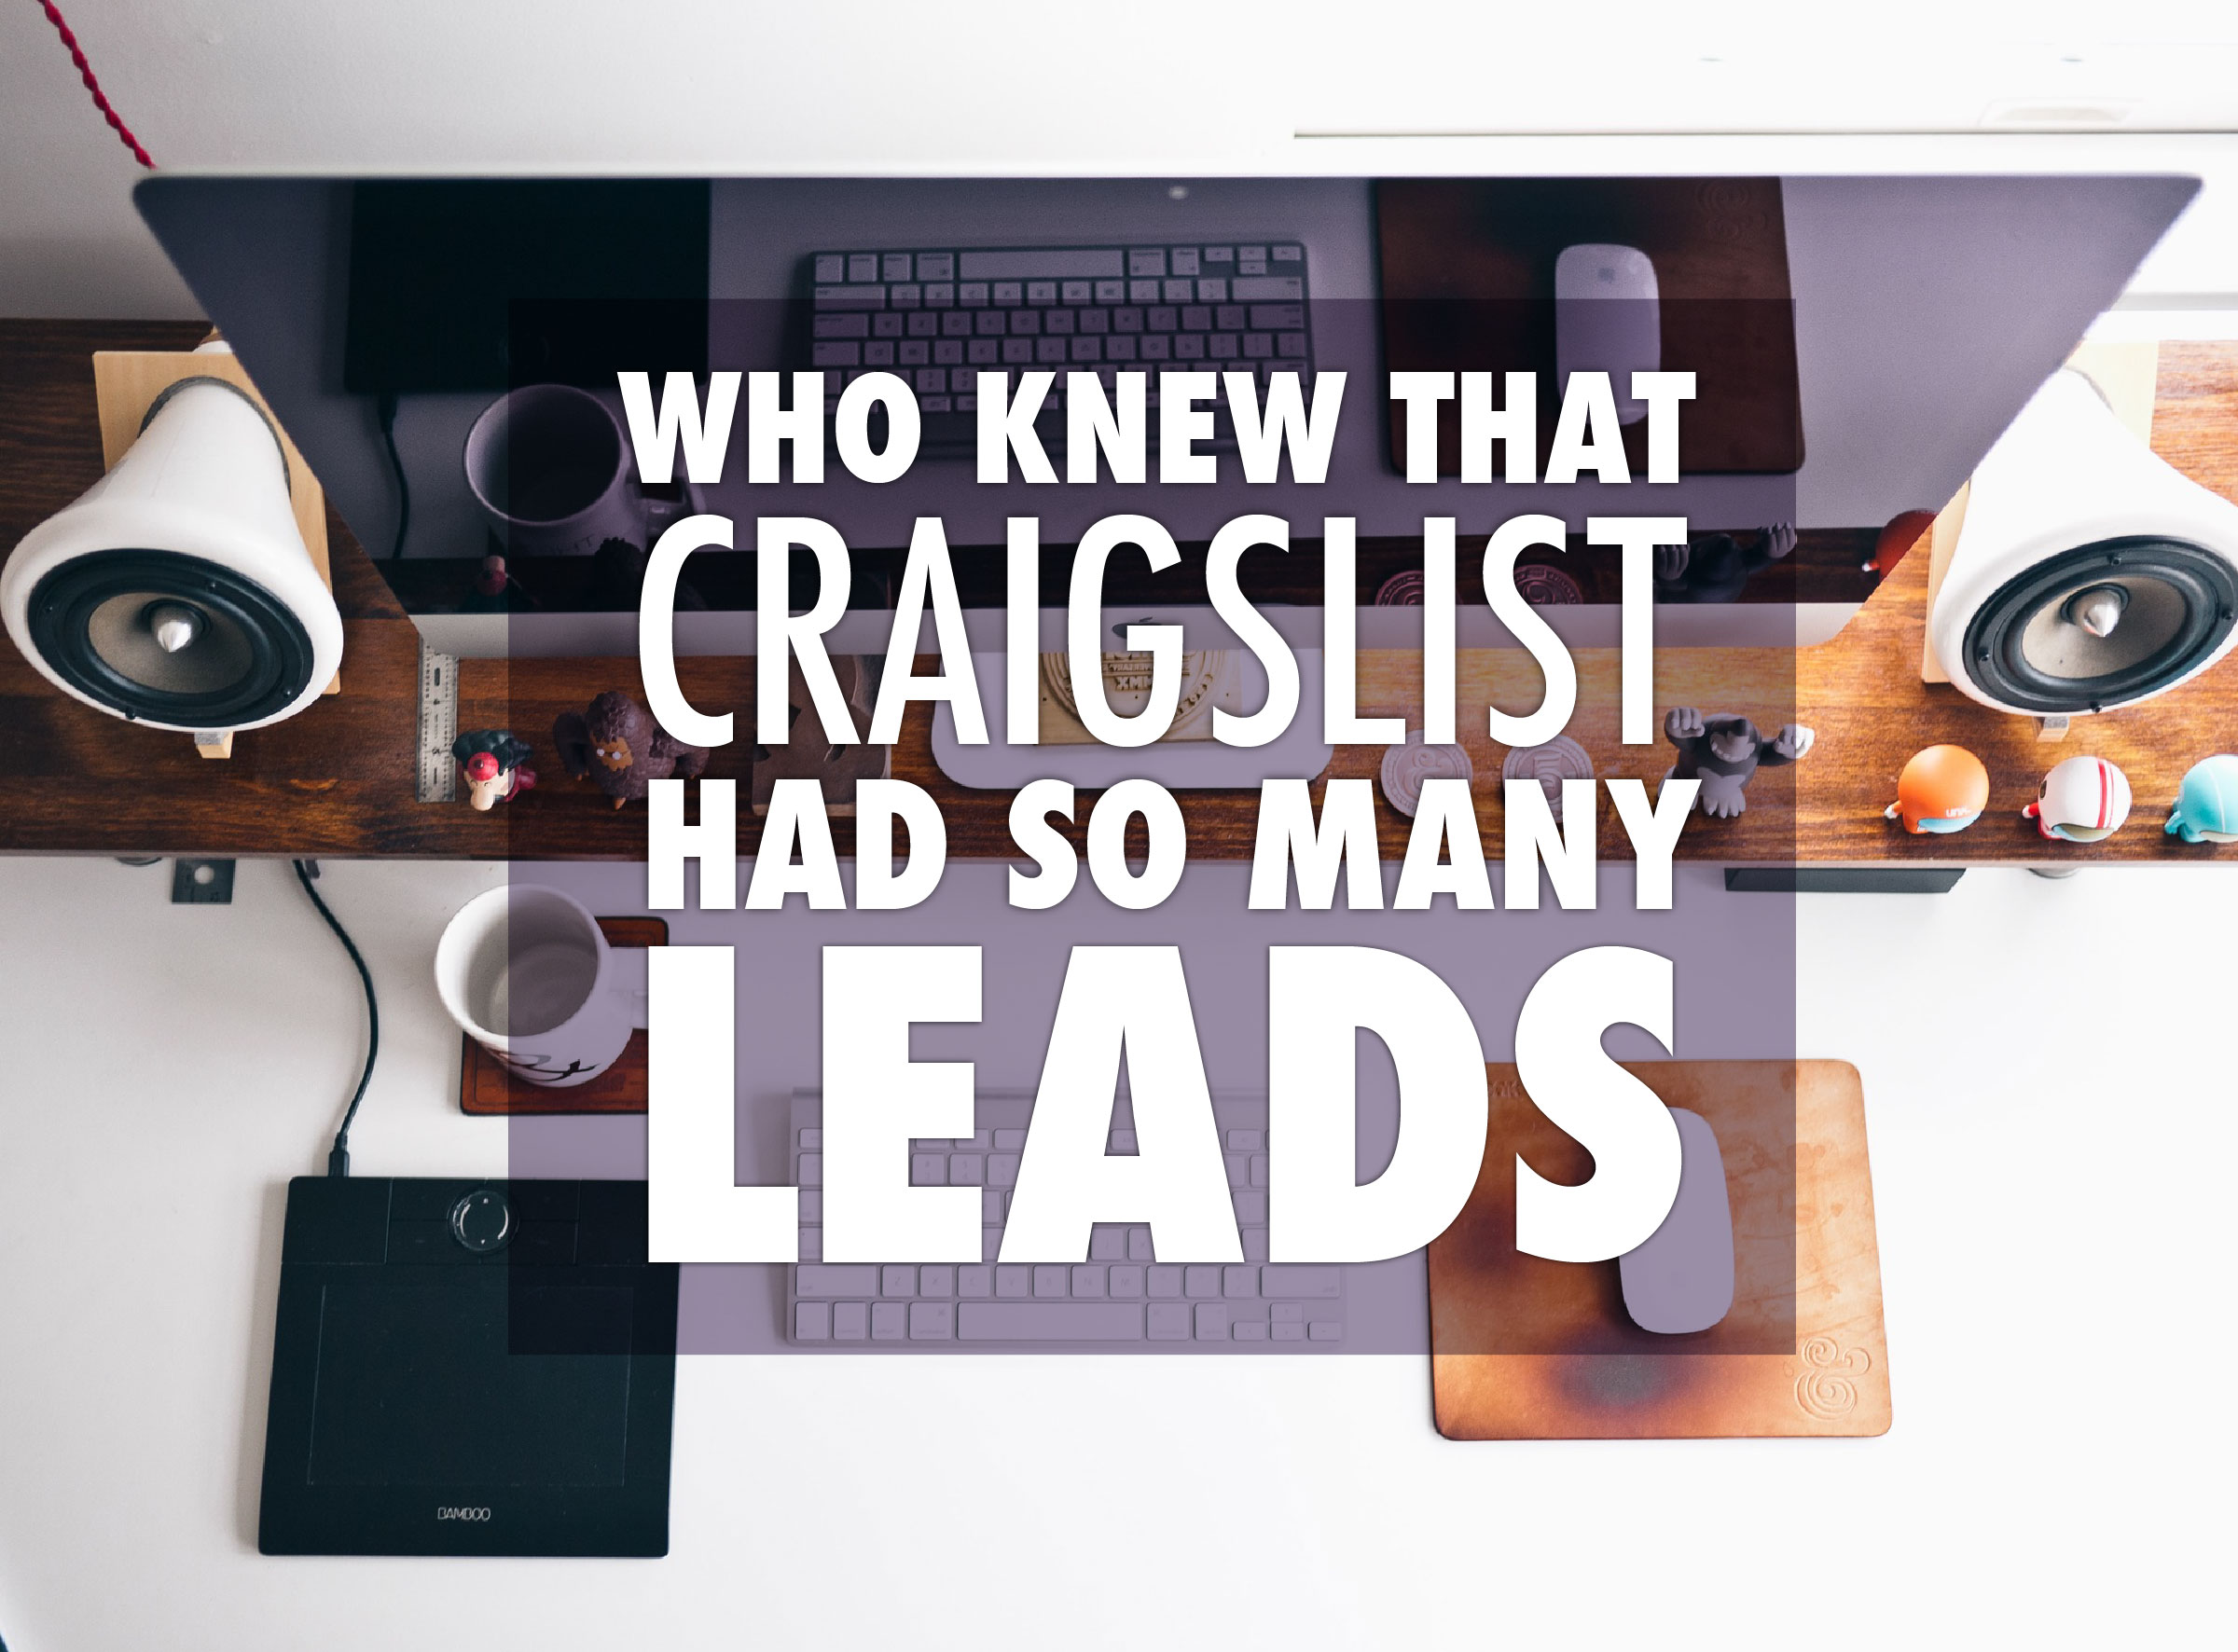 Get Real Estate Leads From Craigslist: The Definitive Guide by Tyler Zey